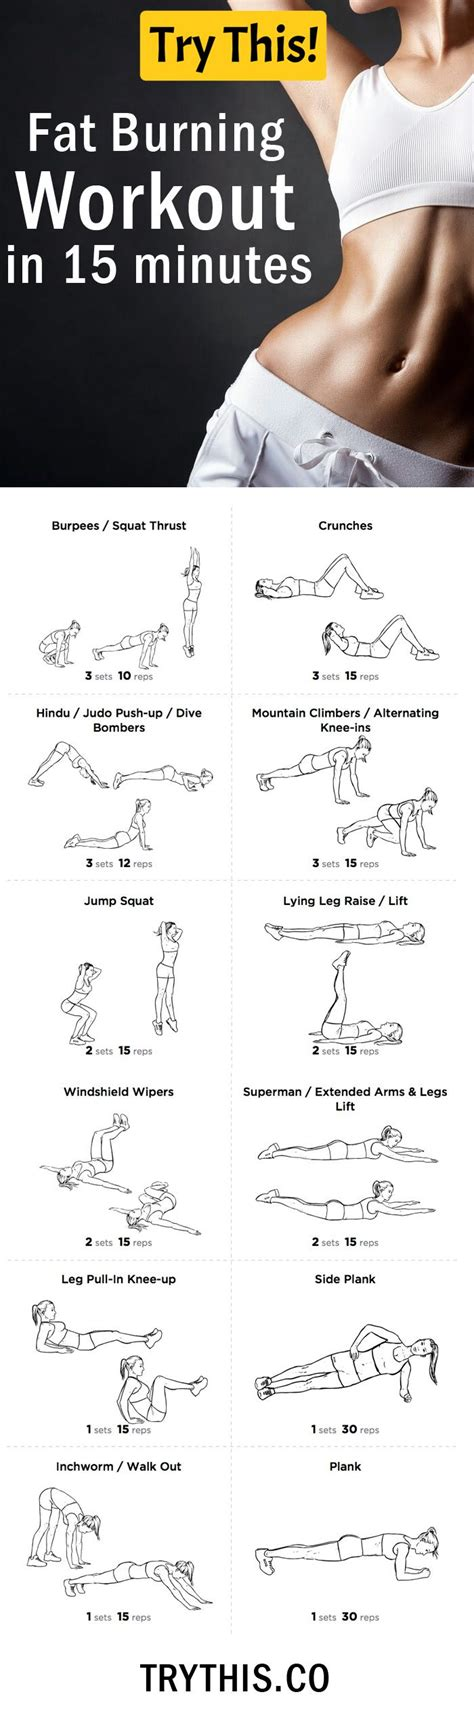 the fat incinerating 15 minute workout for weight loss 1000 ideas about fat burning workout on pinterest fat